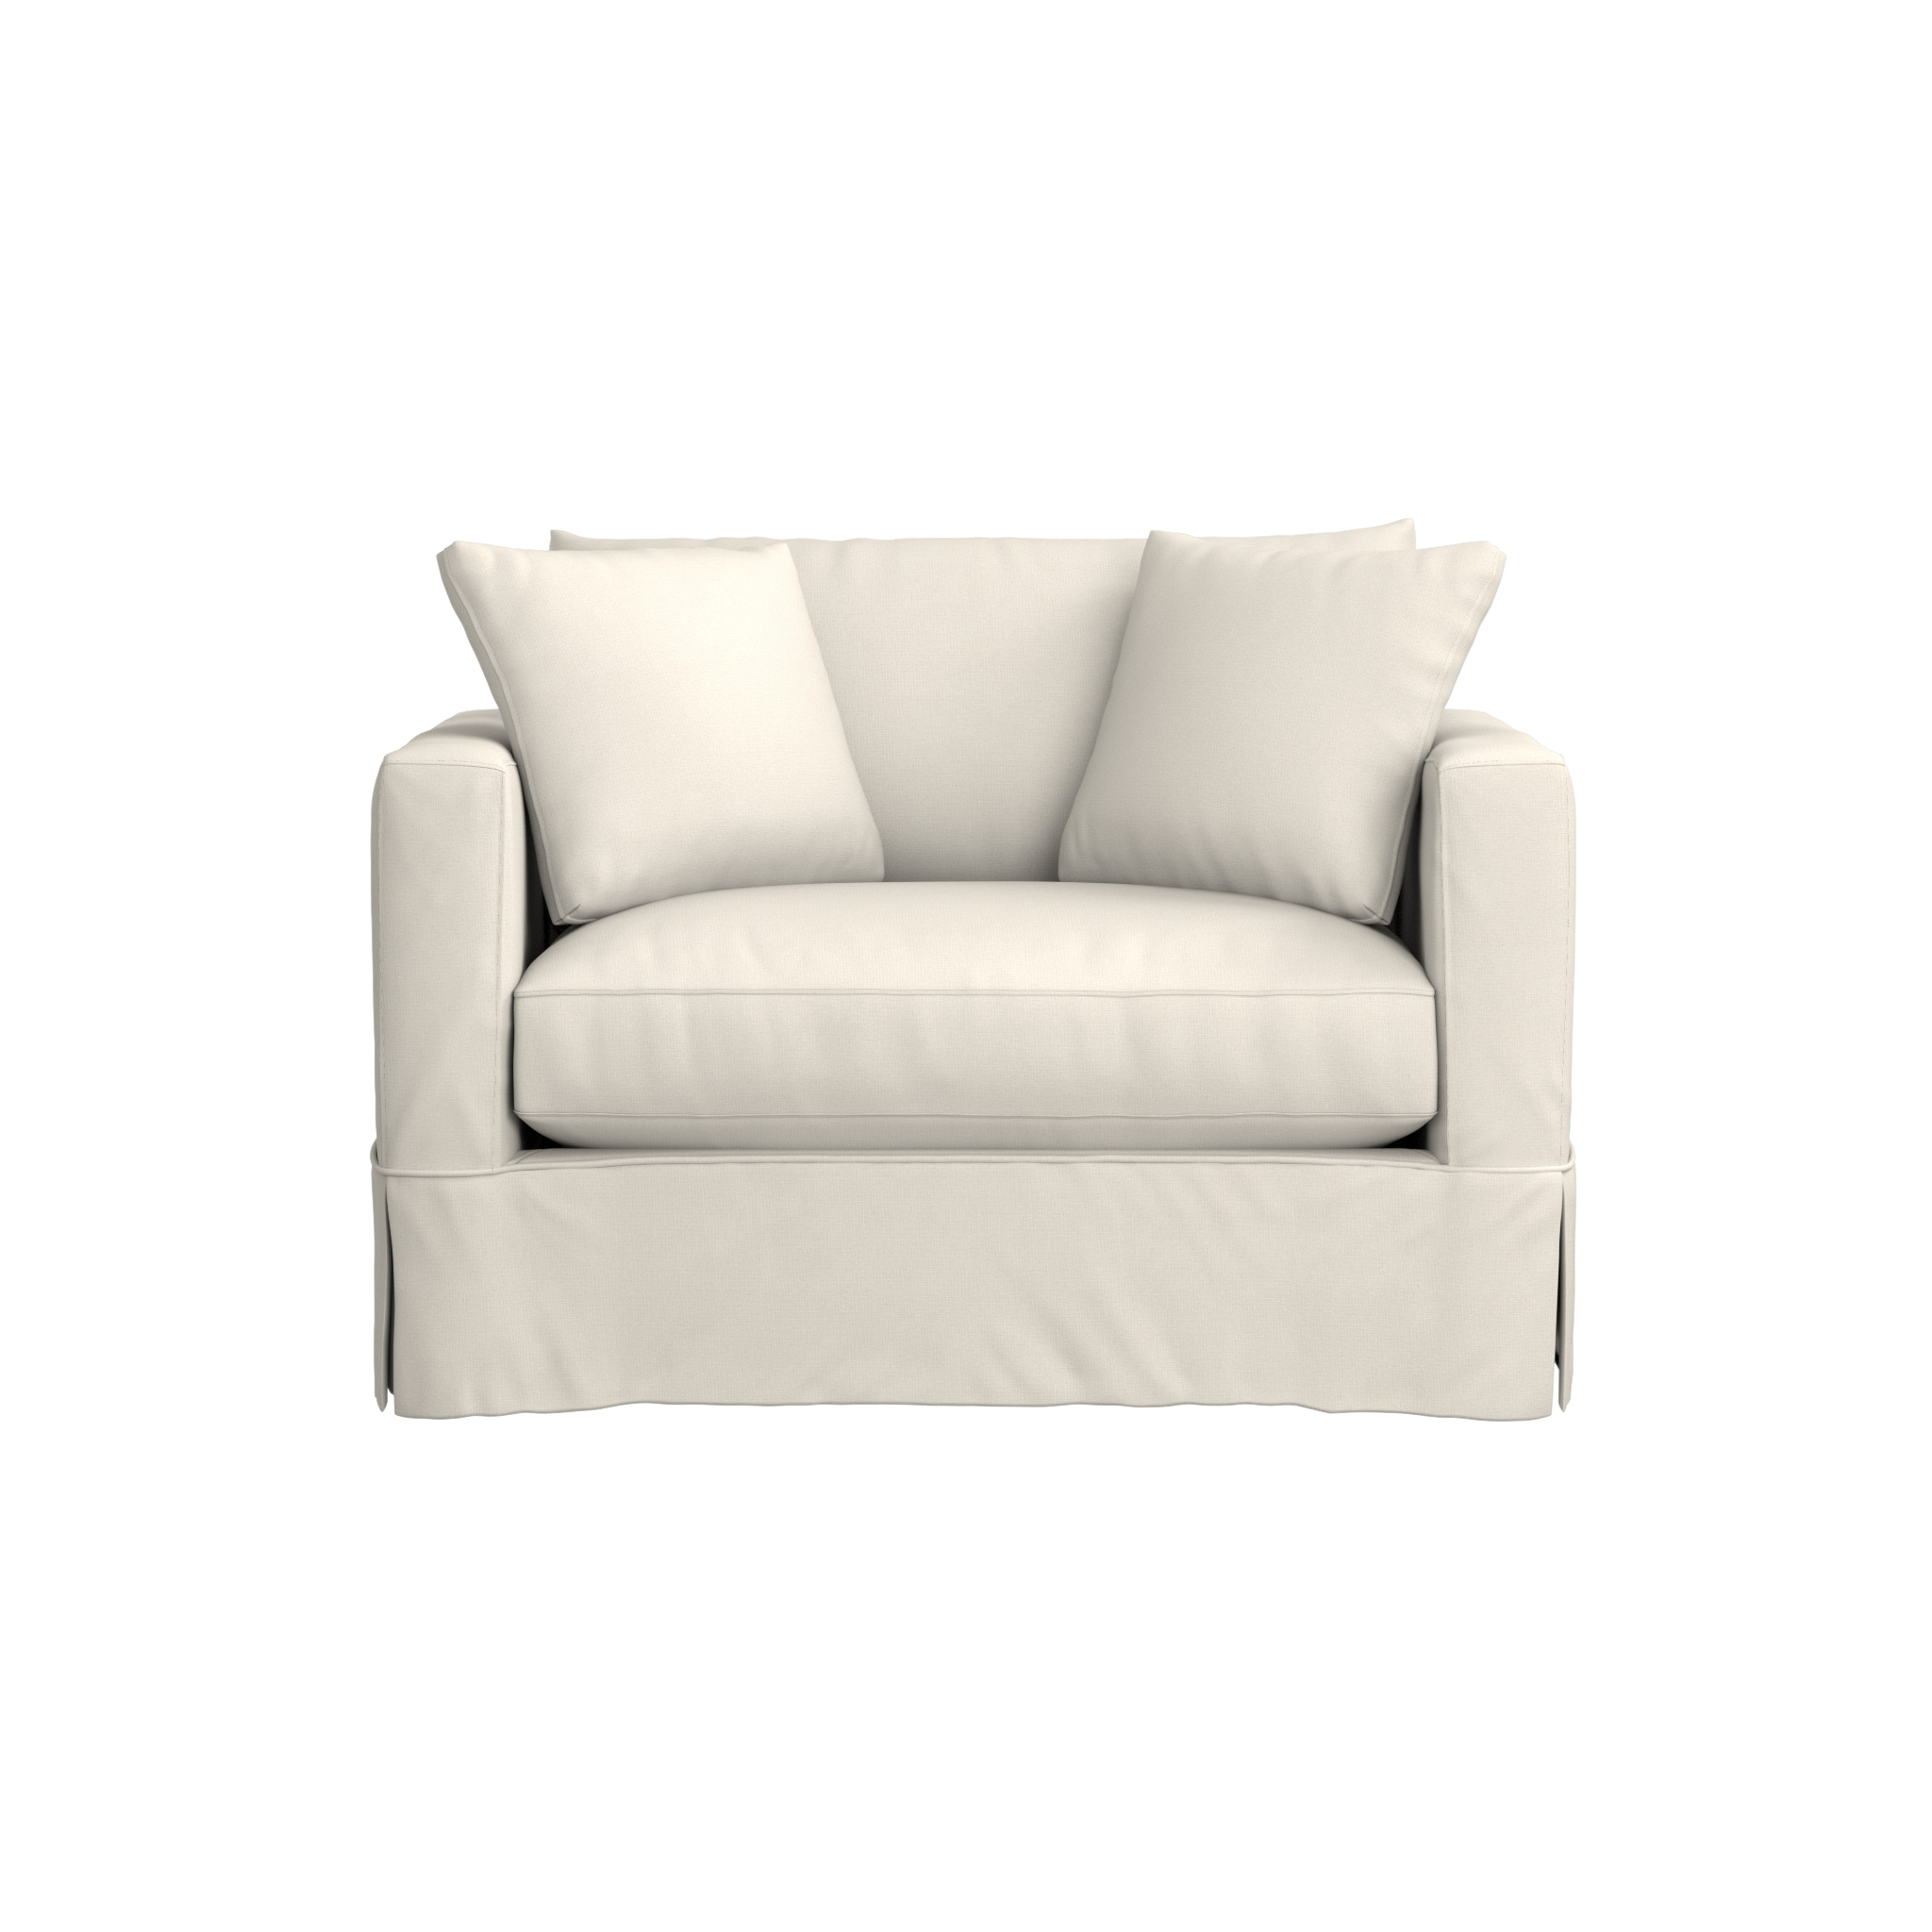 Sofas Center : Twin Sofa Sleeper Chairstwin Chairs Salechair Size pertaining to Twin Sofa Chairs (Image 23 of 30)